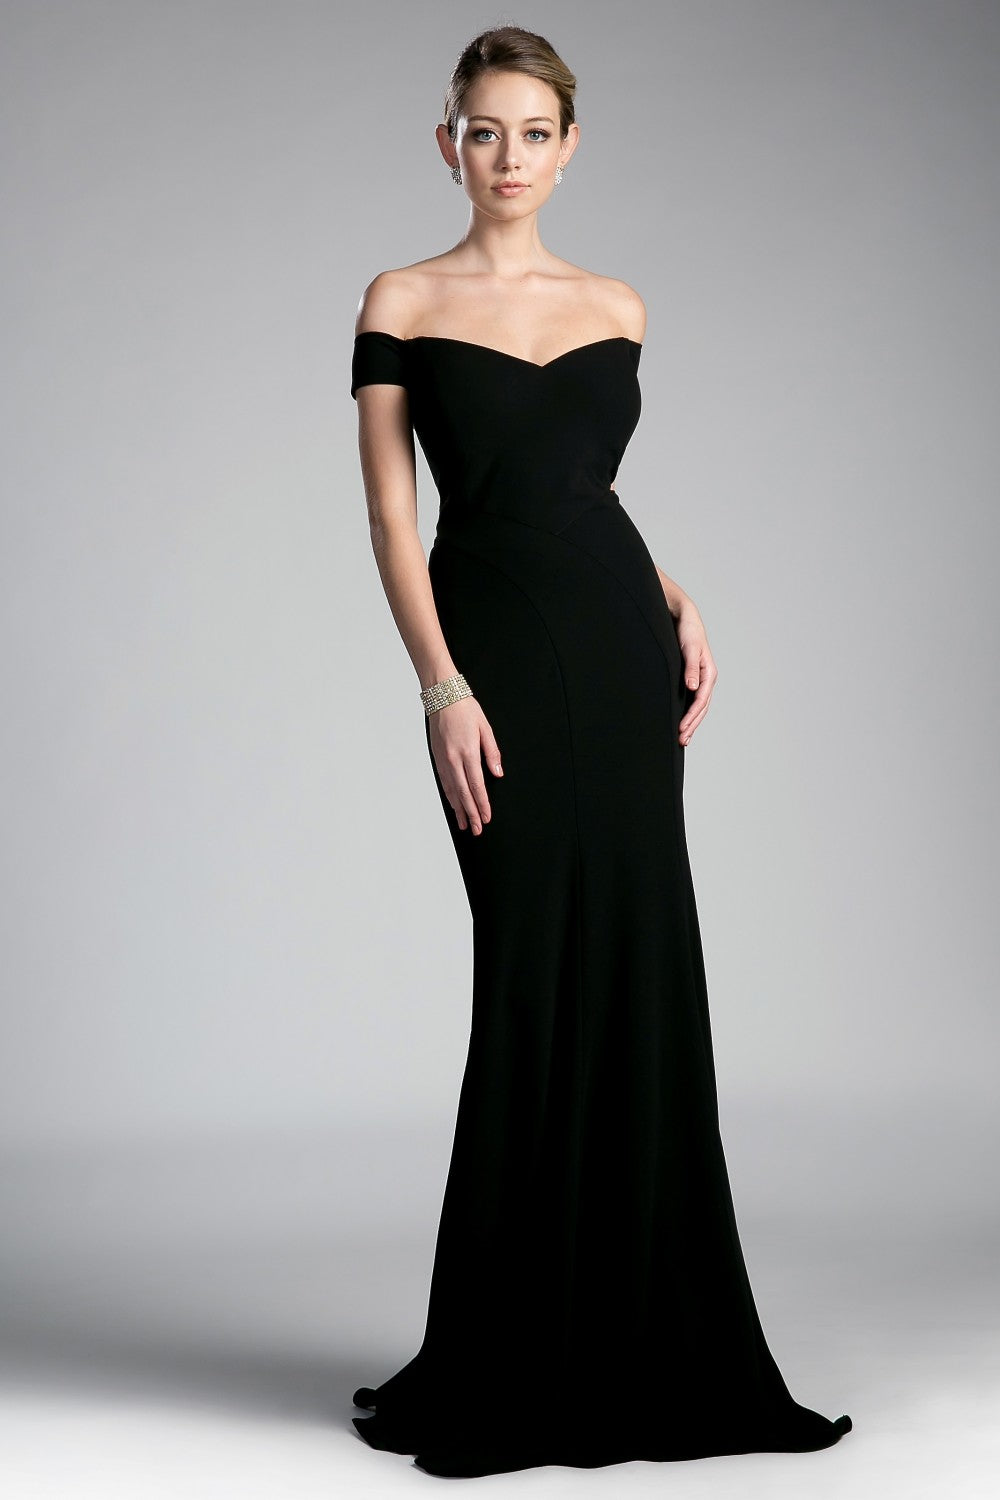 Gwen Bridesmaid Dress Off the Shoulder Fitted Maids Gown C711NR-Black  SAMPLE IN STORE